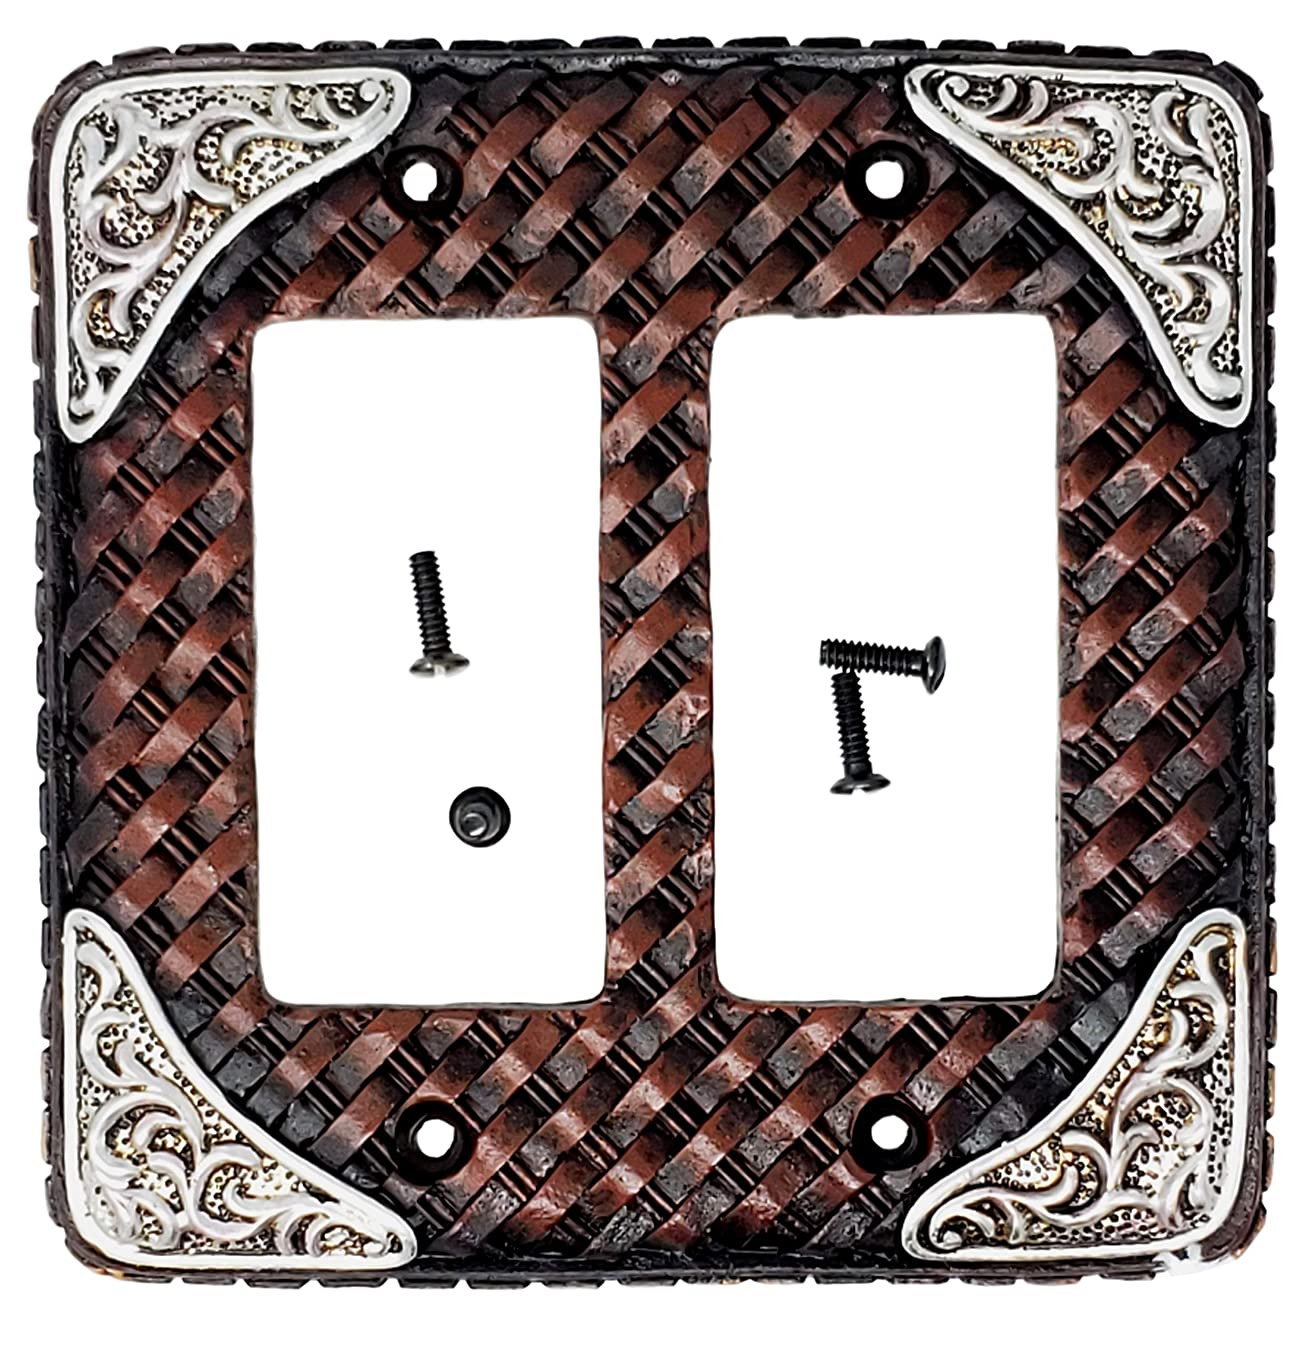 LEATHER DOUBLE ROCKER SWITCH PLATE COVER